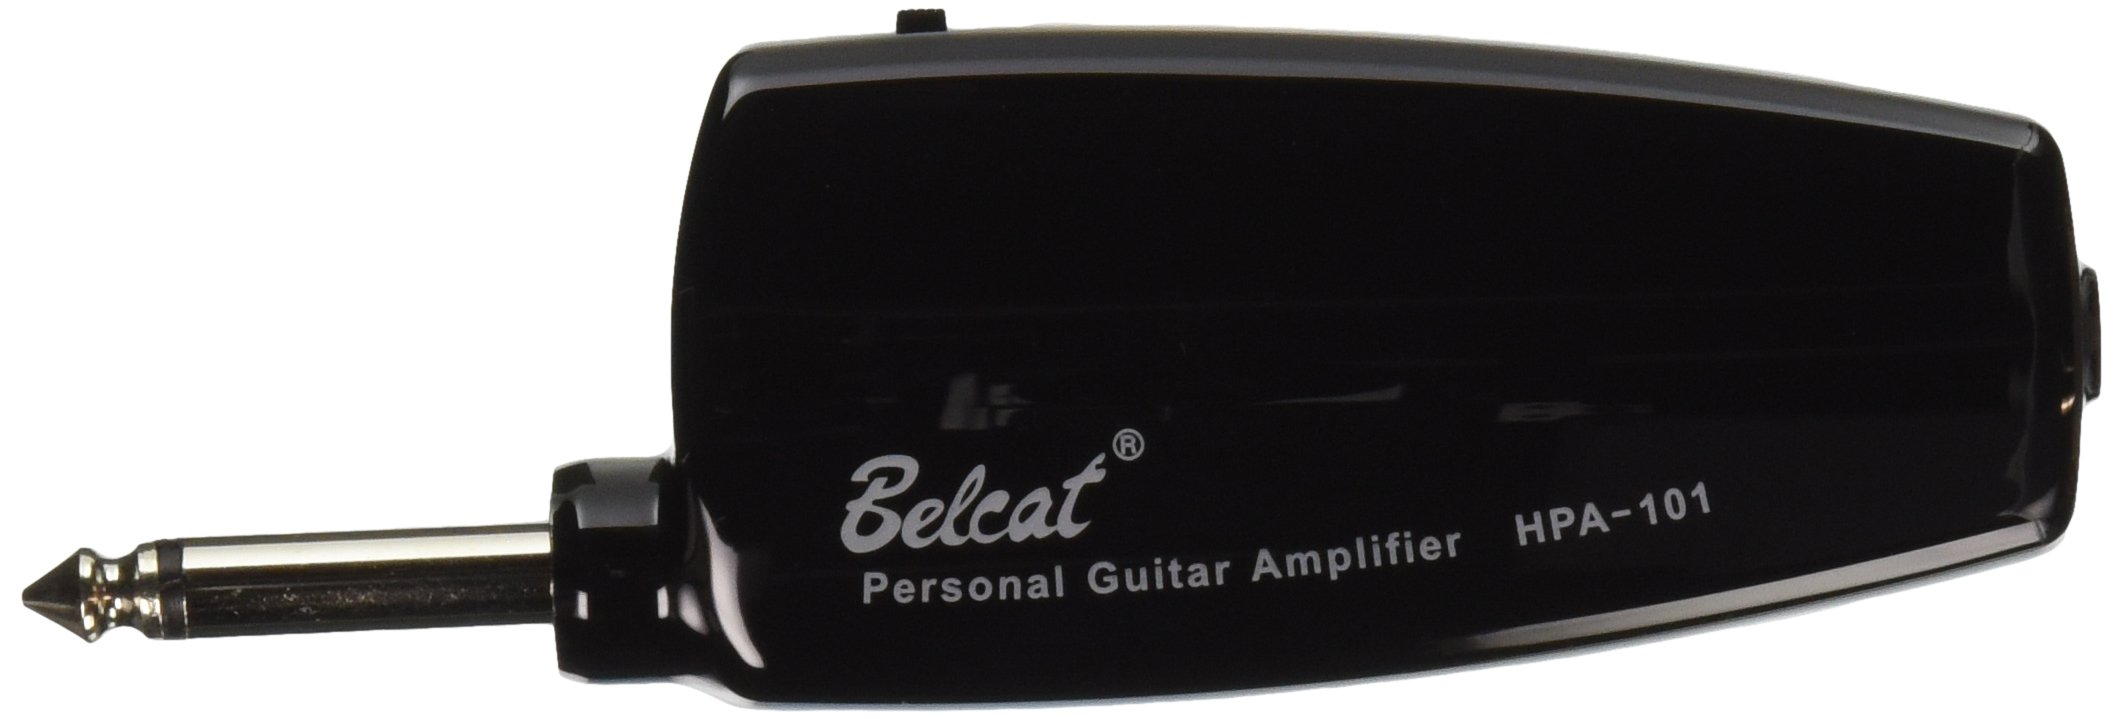 1pkg Belcat HPA-101 BLACK Guitar Headphone Amplug Plug in Amplifier w/ Distortion and Clean Sound